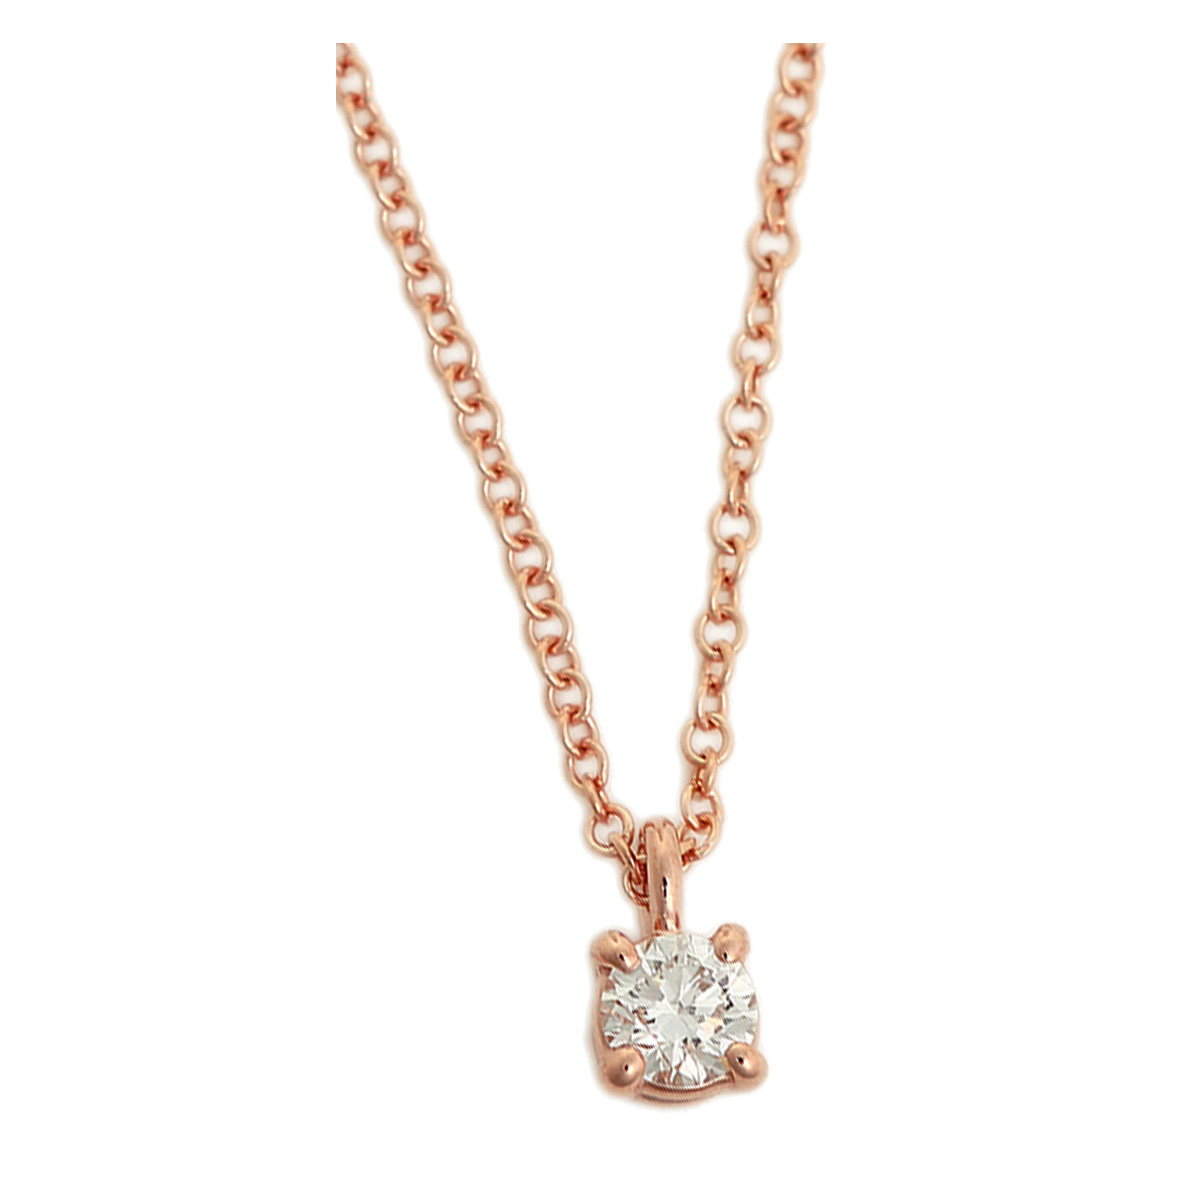 Salada bowl rakuten global market tiffany necklace single diamond tiffany necklace single diamond tiffany co solitaire diamond pendant12ct 16 in 18r 30420837 rose gold diamond aloadofball